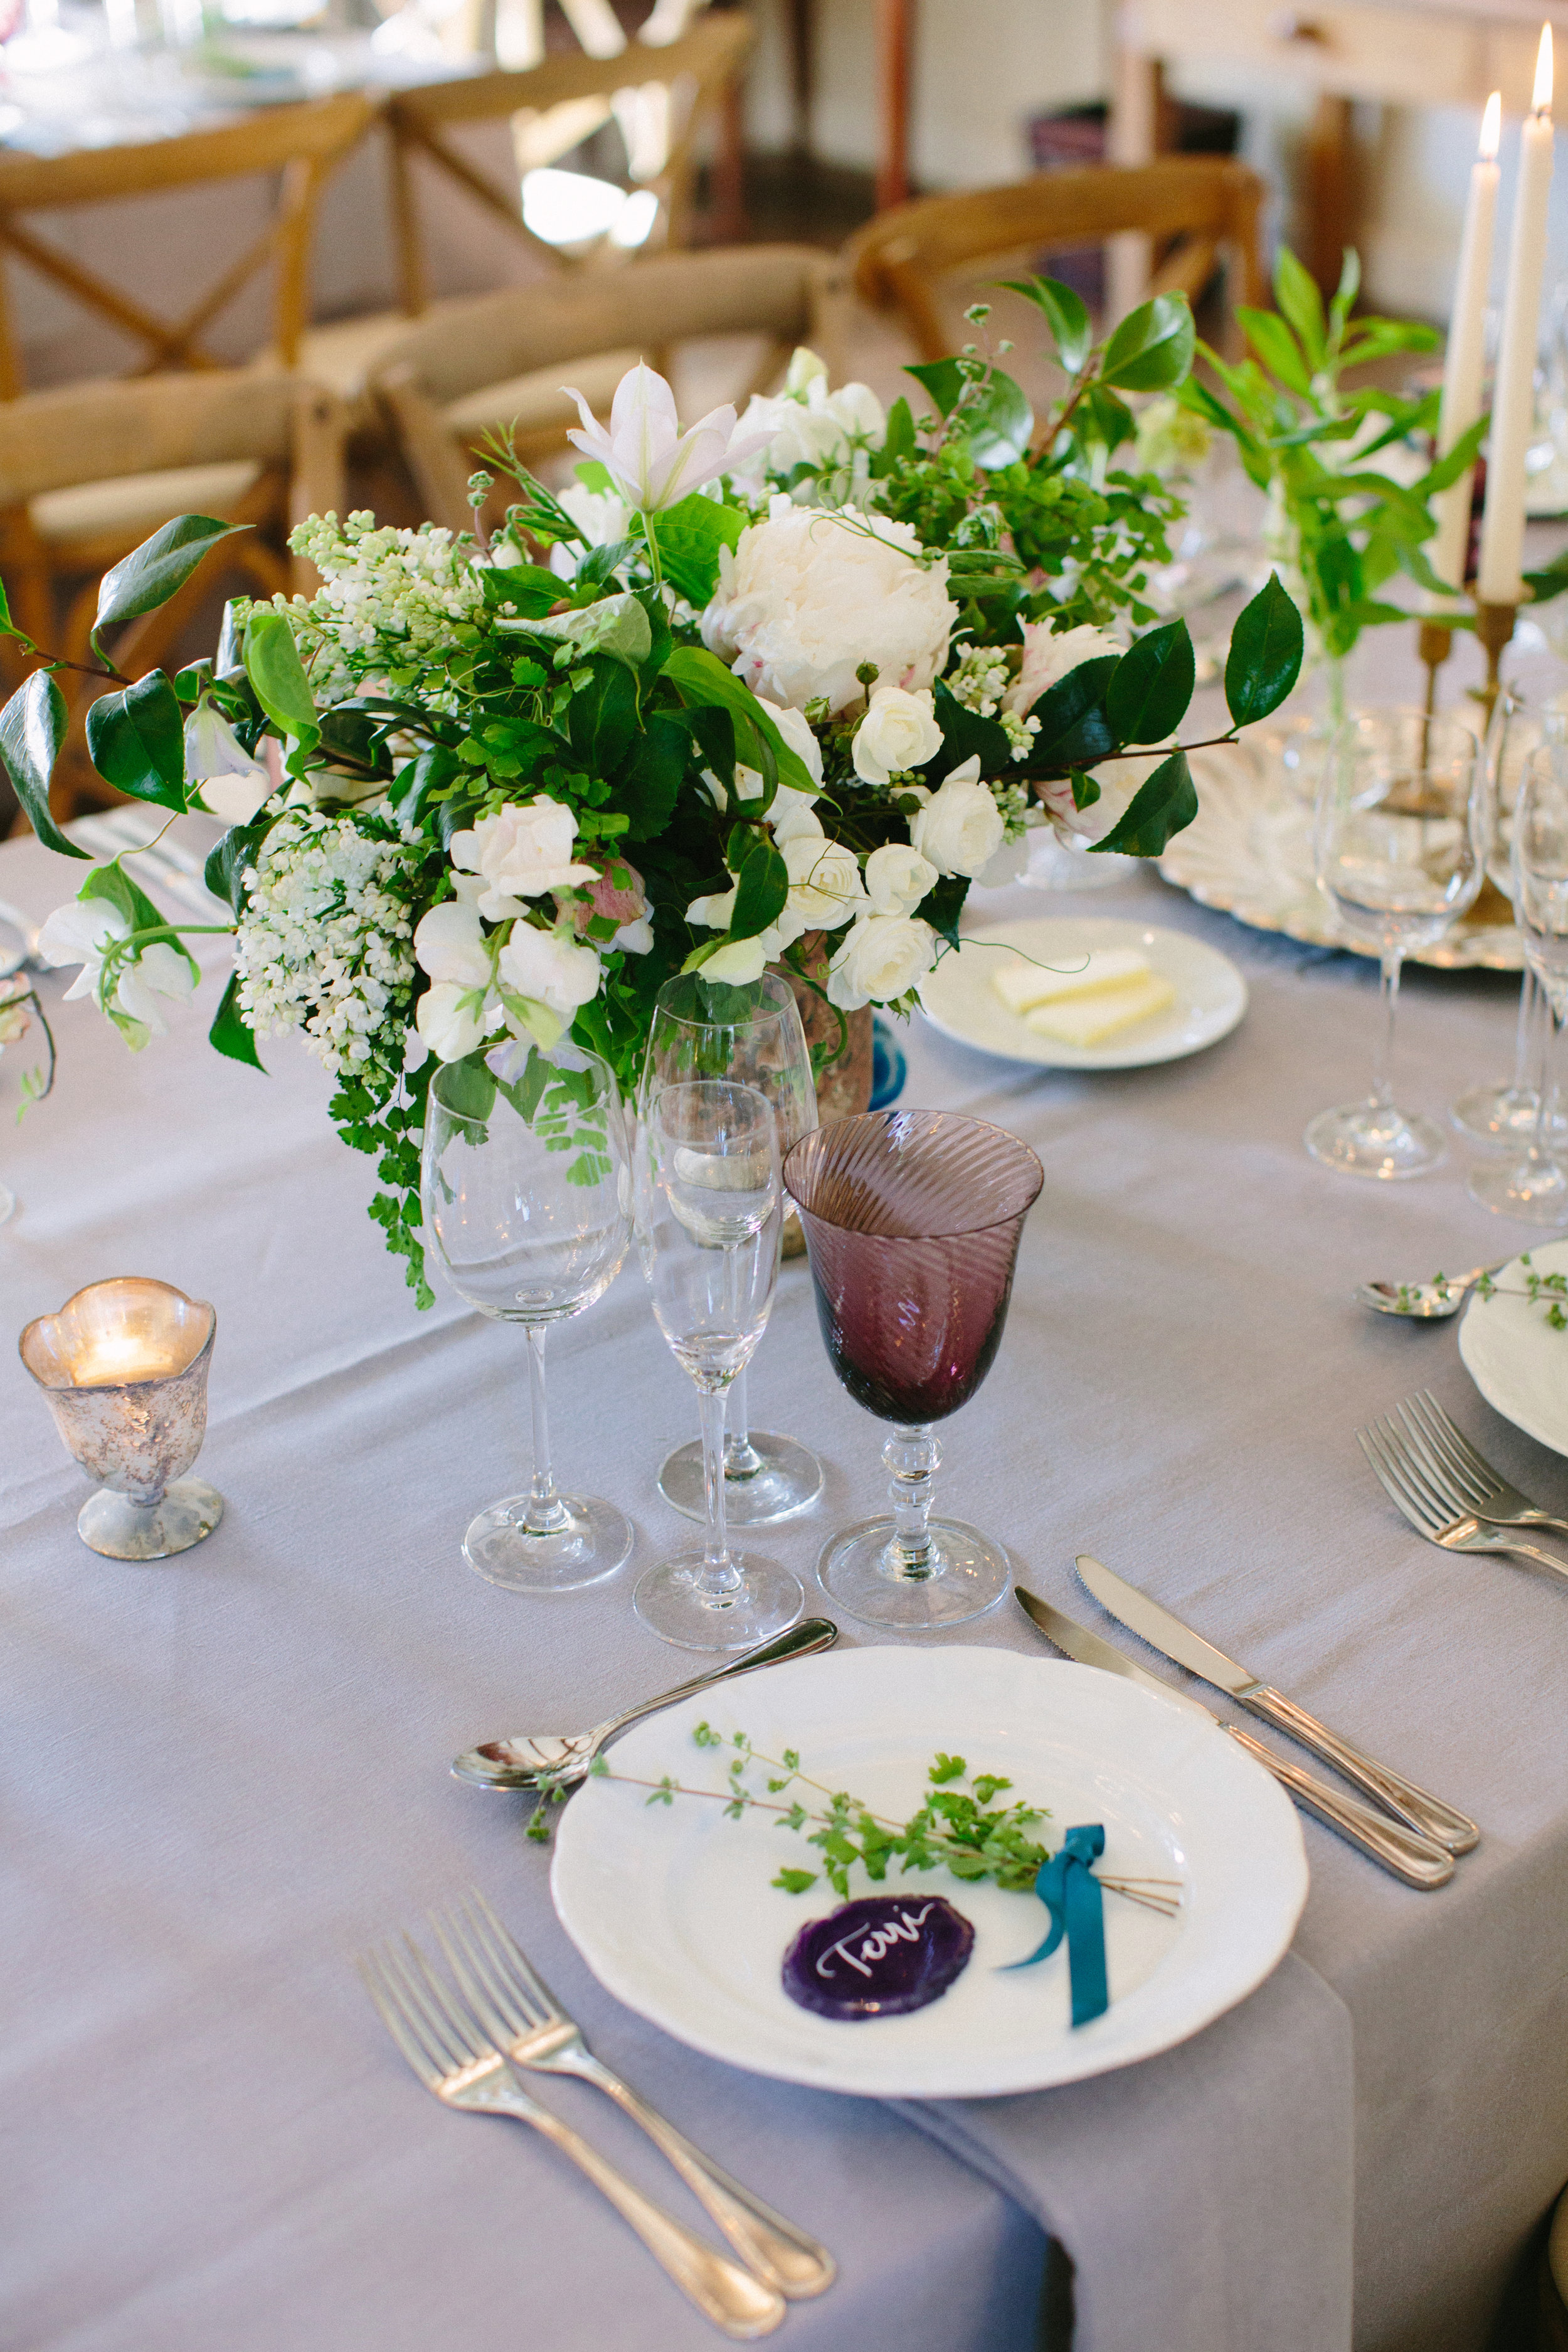 www.santabarbarawedding.com   San Ysidro Ranch   Imagine Events   Millay and Young Photo   Reception Table   Place Setting